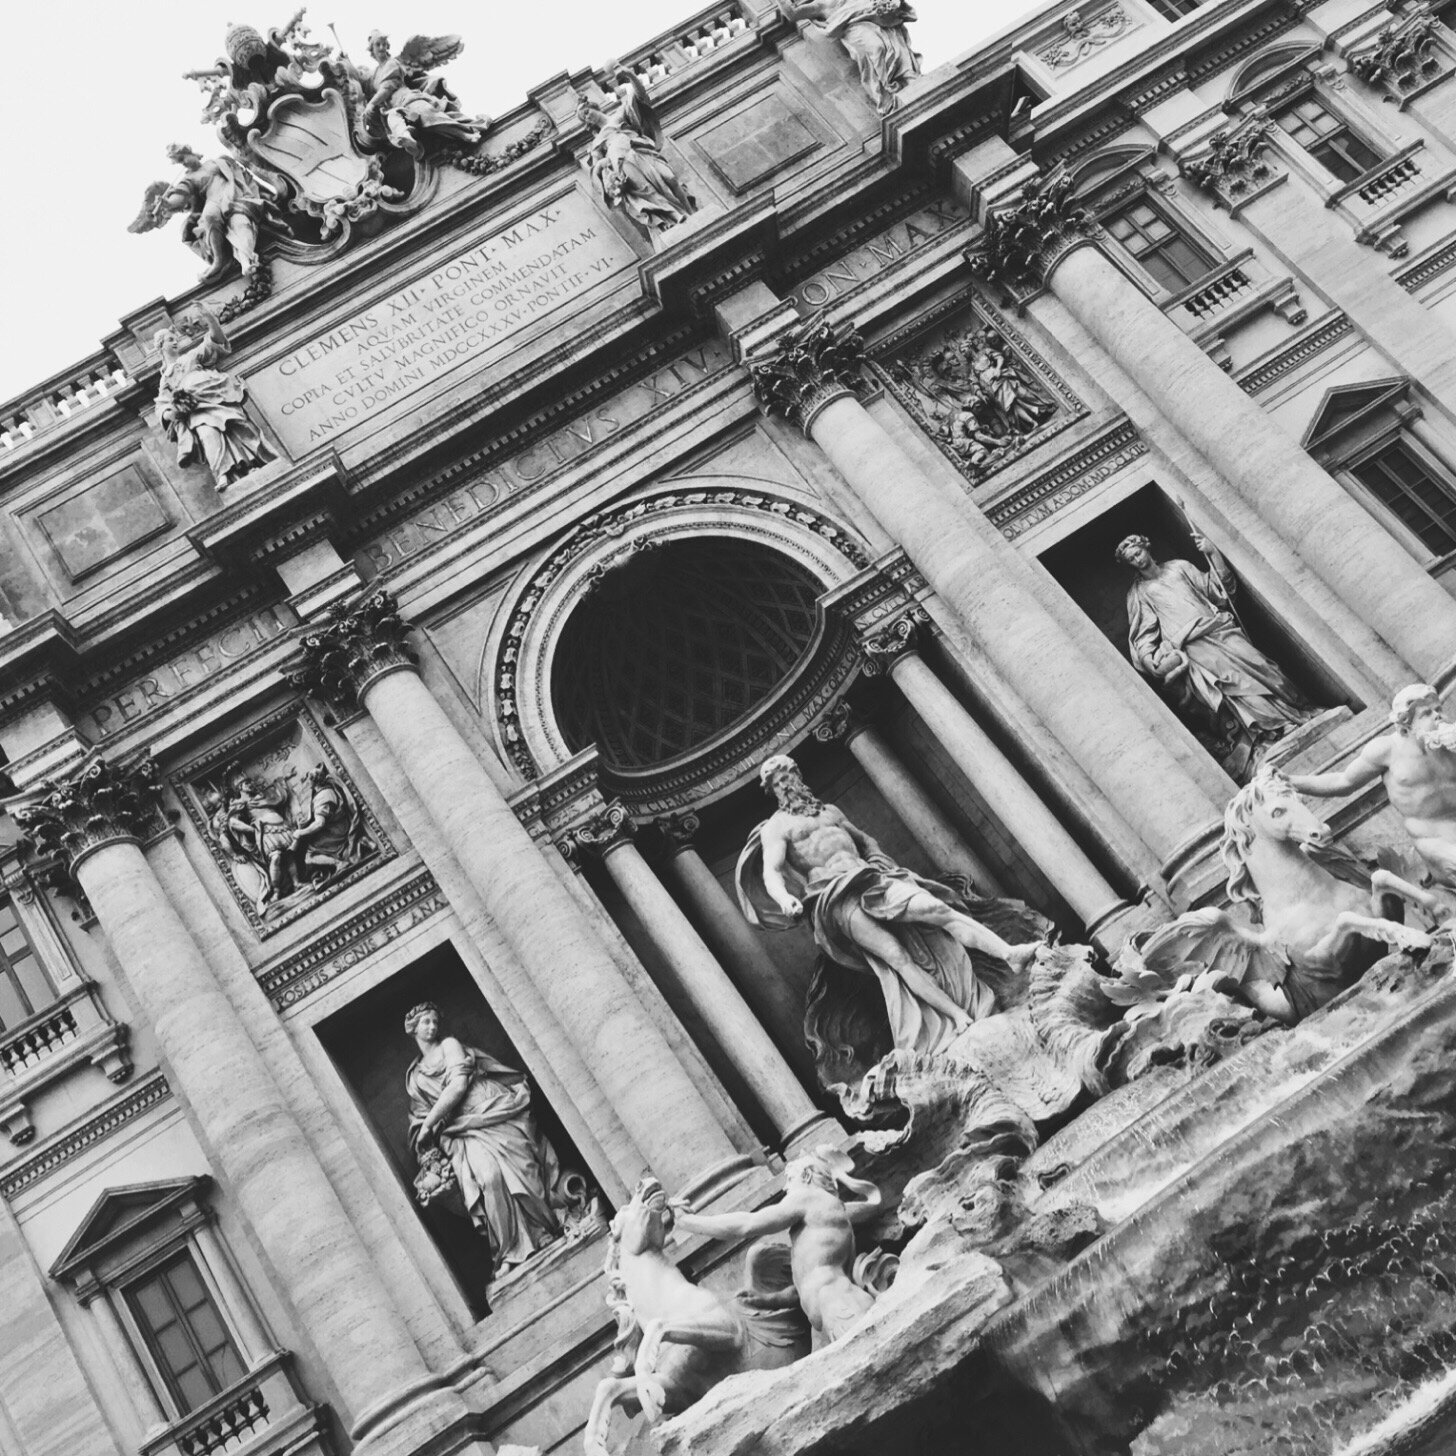 The Trevi Fountain in black and white… (I mean, it does look cool)